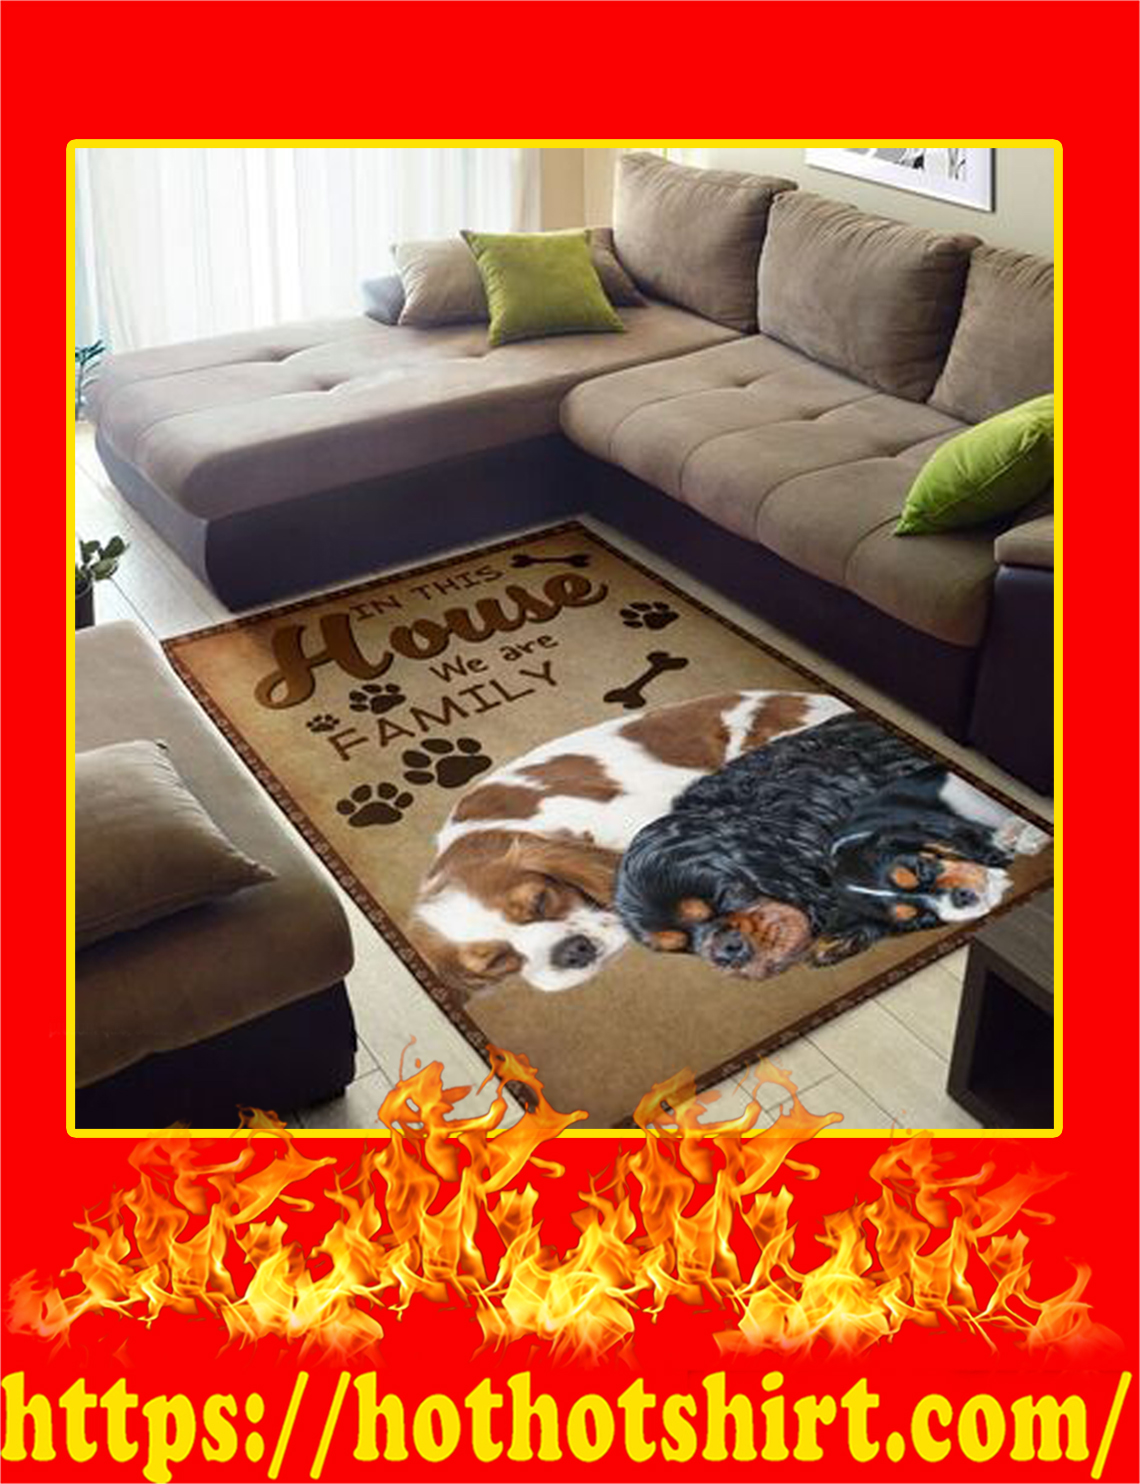 In This House We Are Family Cavalier King Charles Spaniel Rug- small